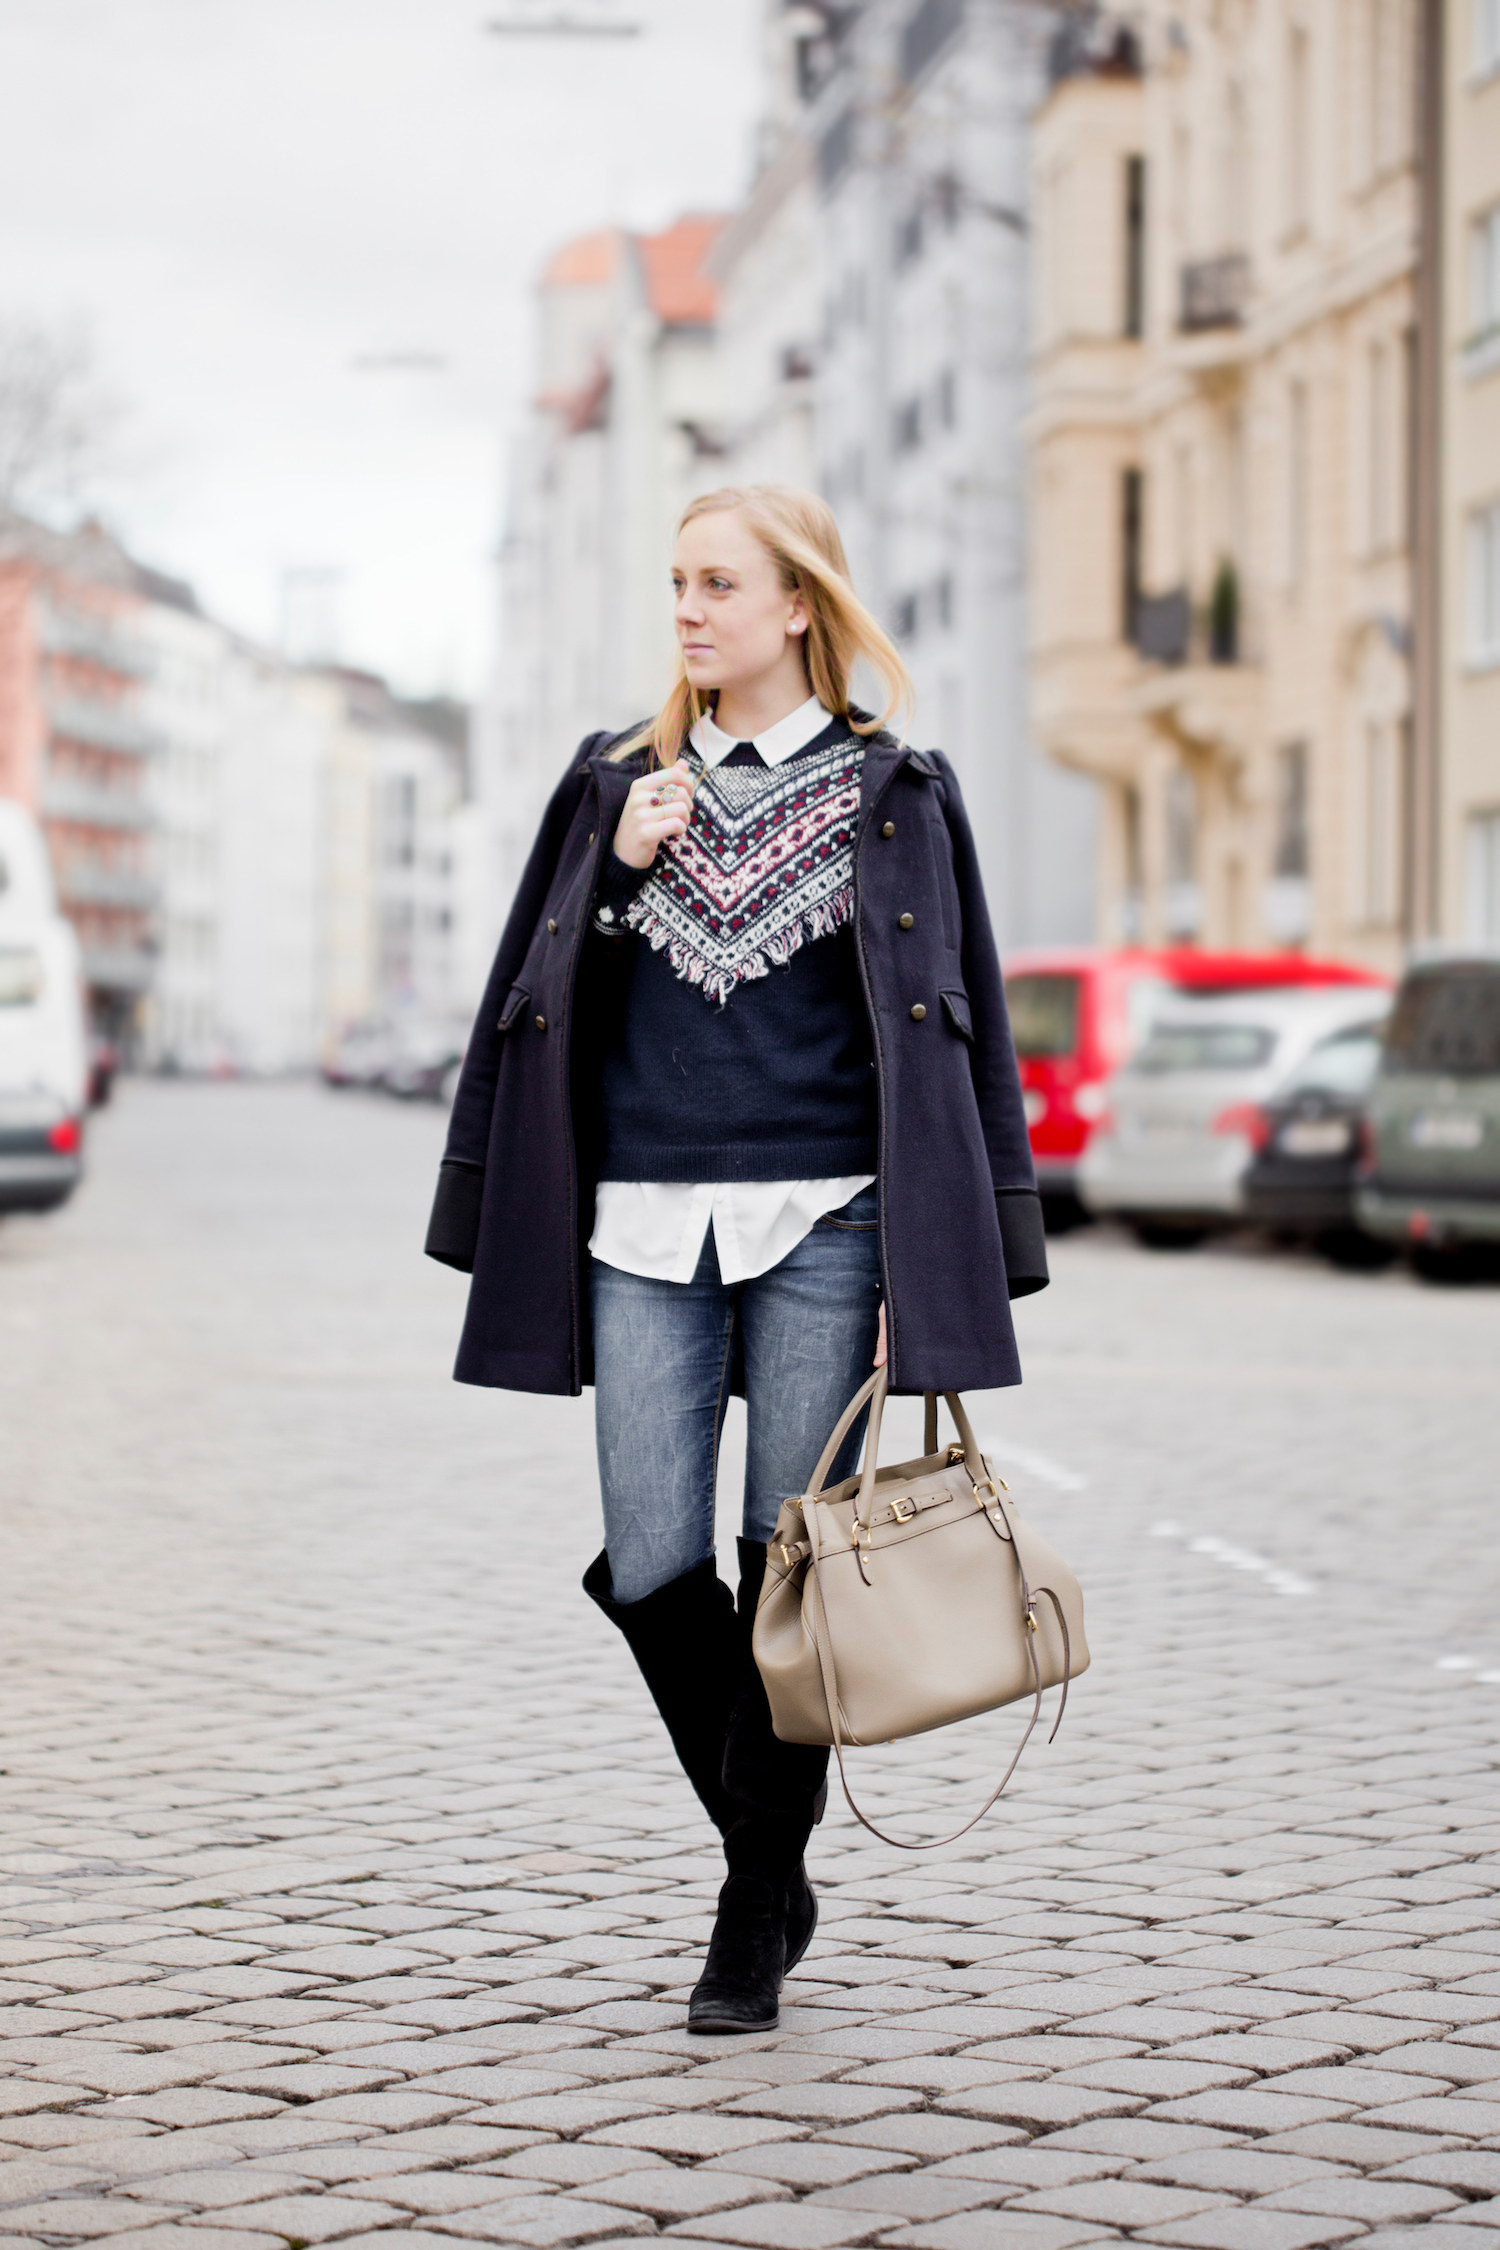 fringe pullover, black suede overknees, how to wear overknees, The Golden Bun | München Modeblog, German Fashion Blog, Fashionblogger, new trends